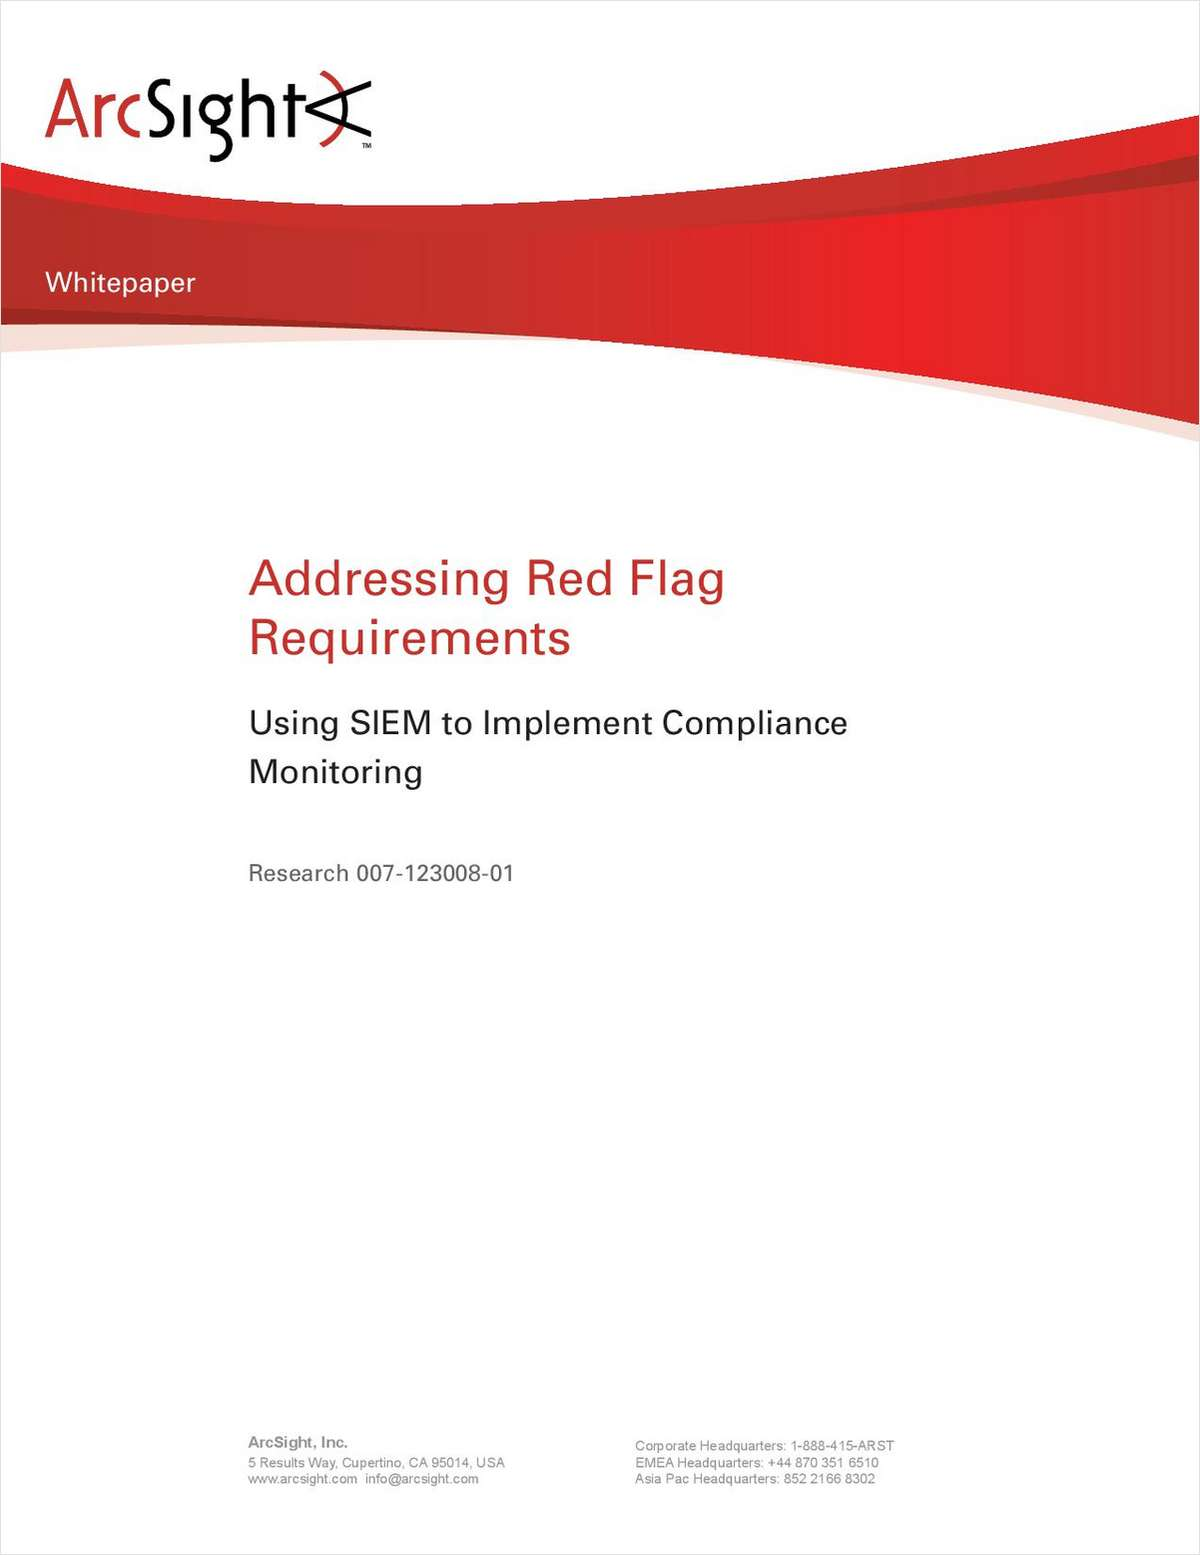 Addressing Red Flag Requirements